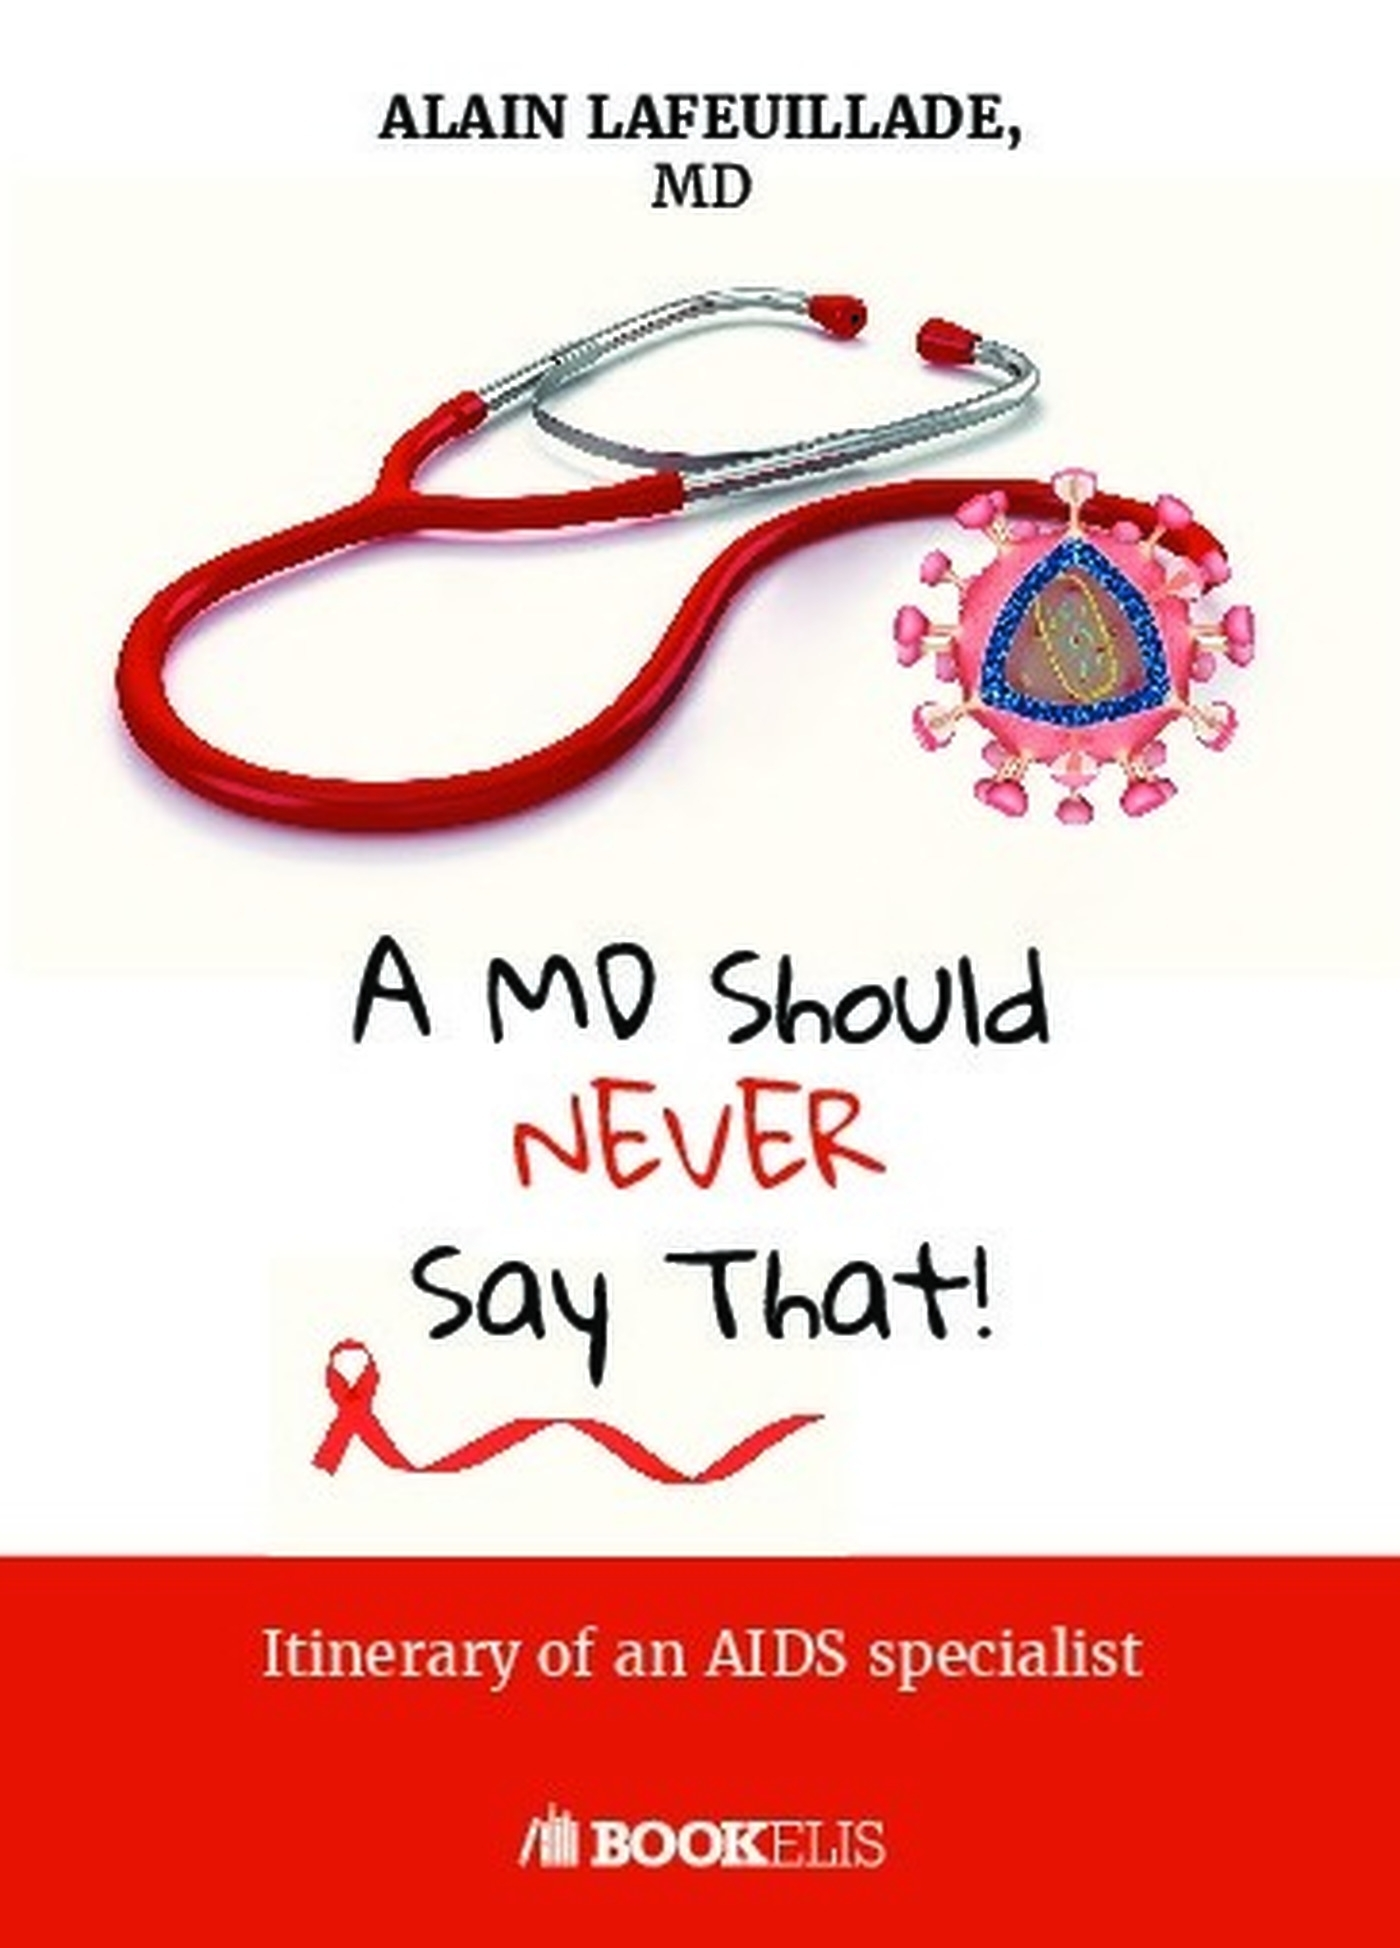 A MD SOULD NEVER SAY THAT...